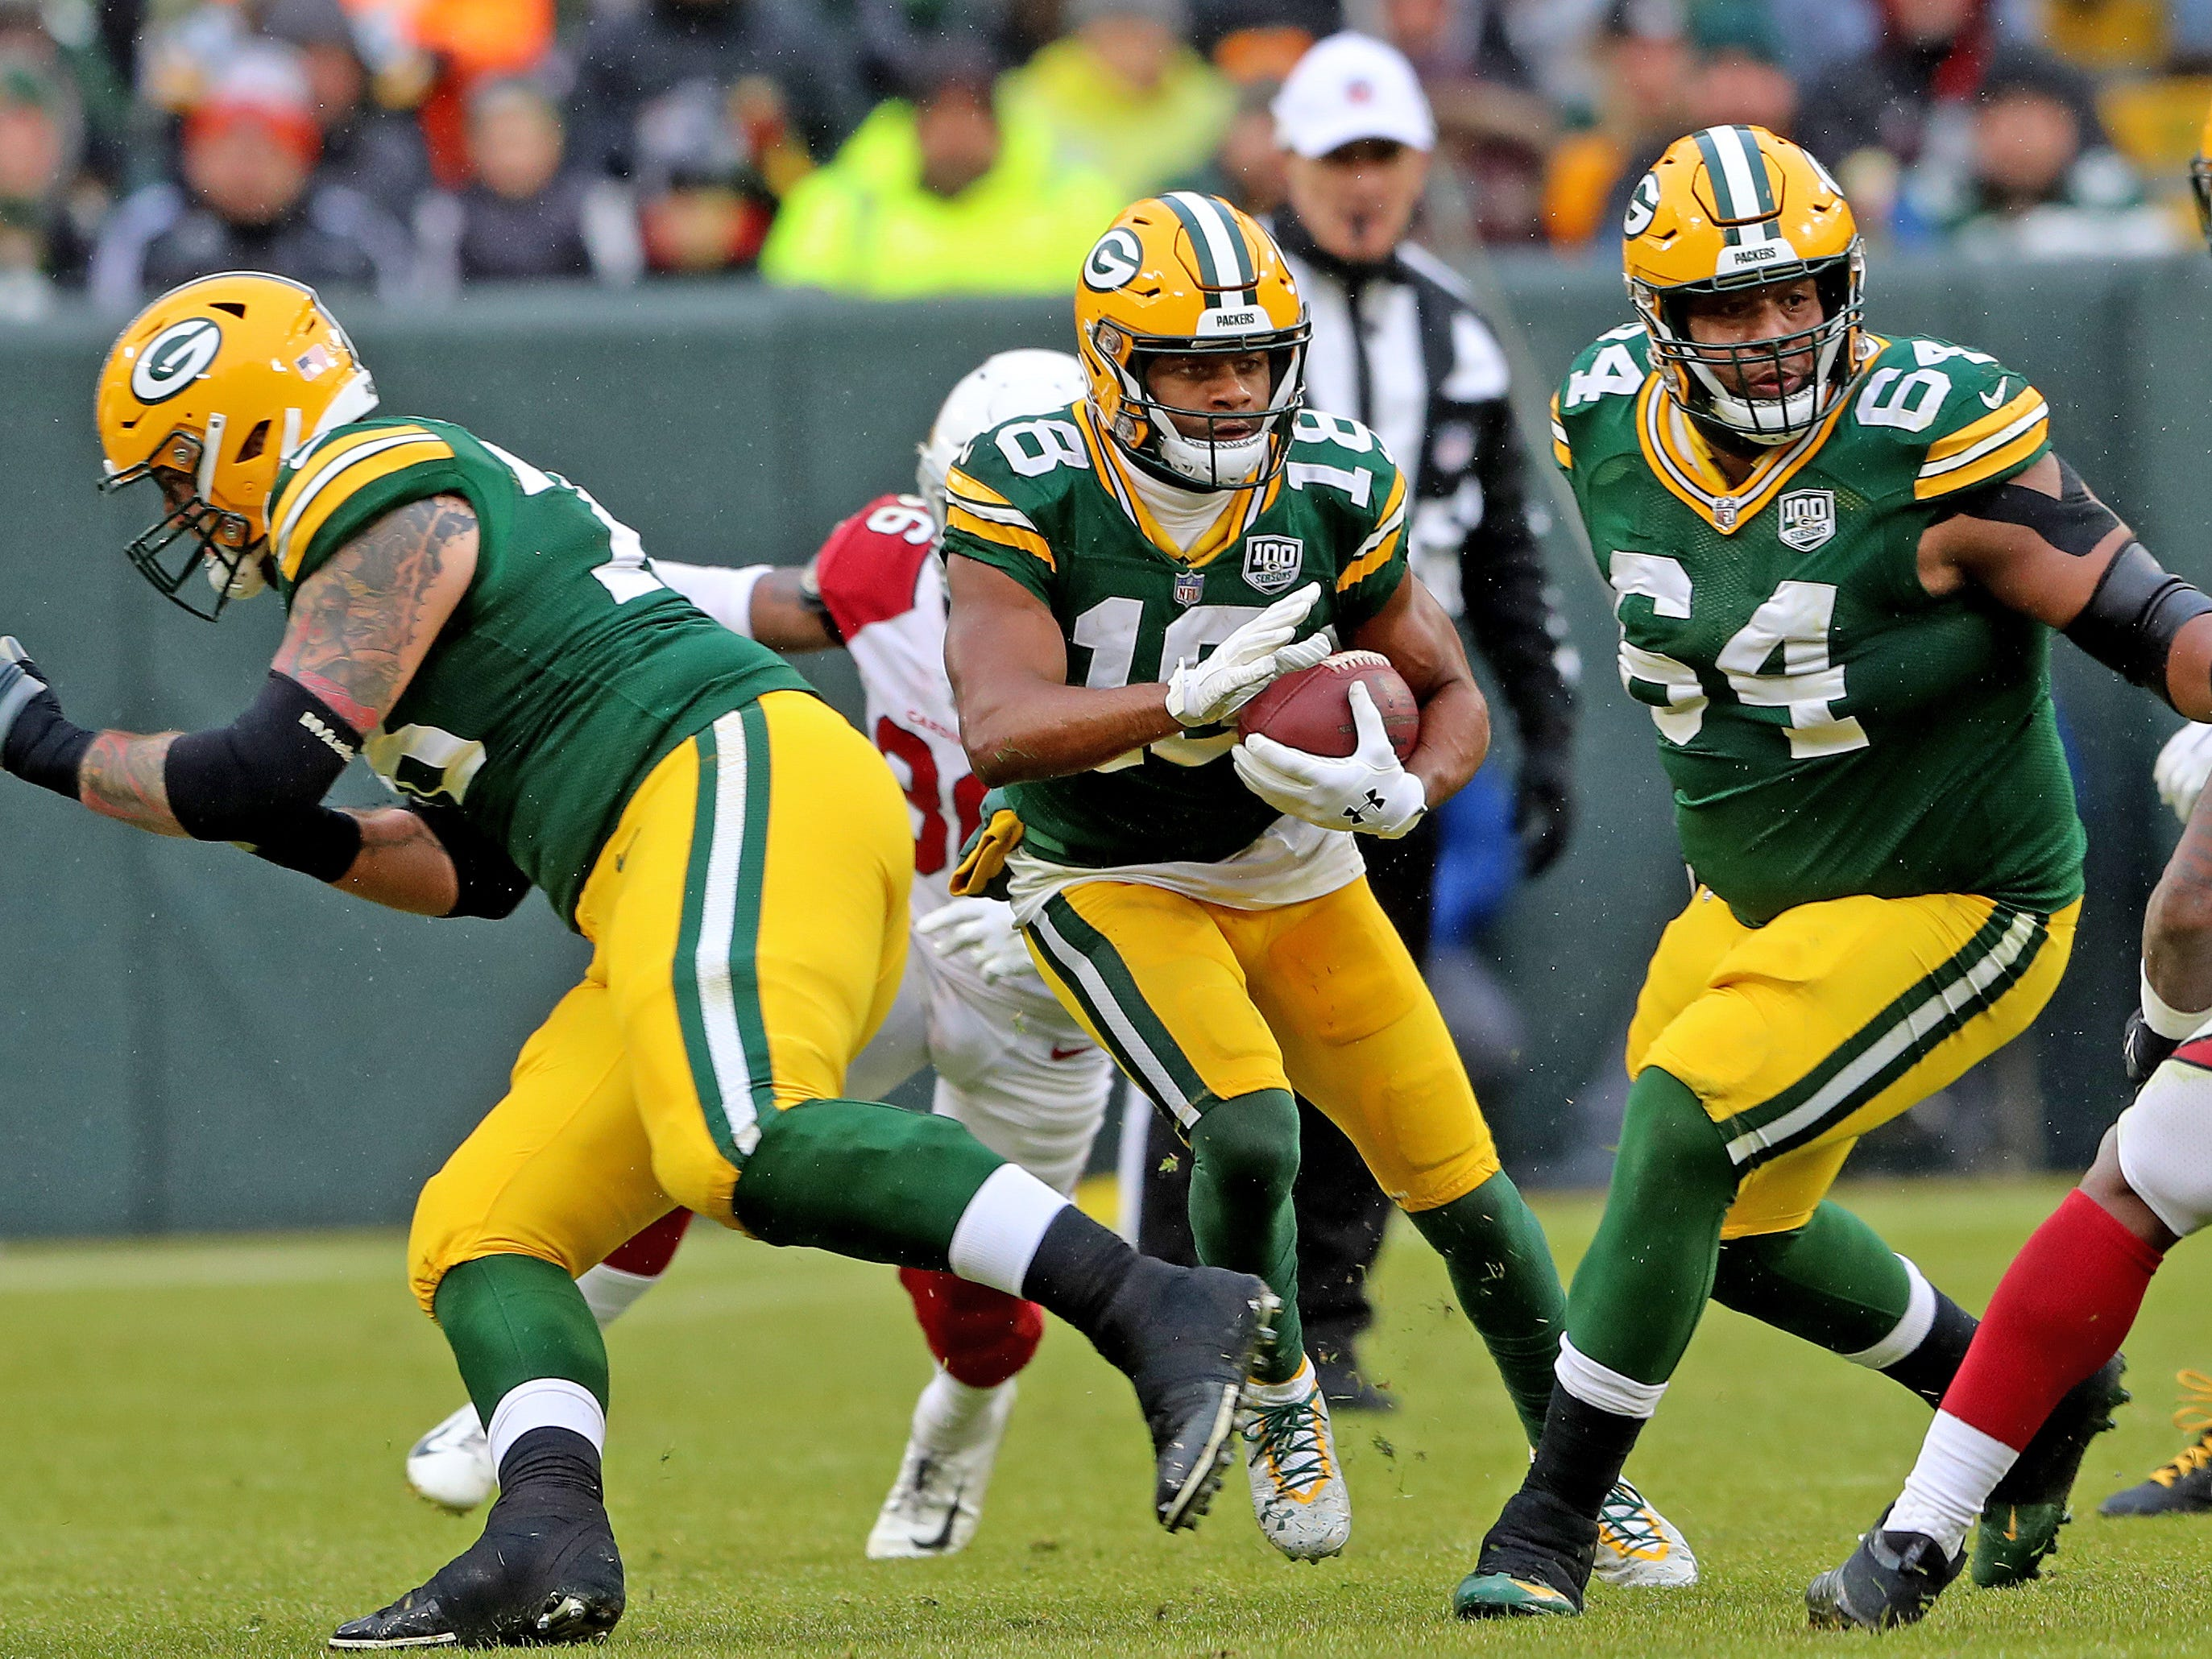 Green Bay Packers wide receiver Randall Cobb (18) runs after a catch as offensive tackle Jason Spriggs (78) and offensive guard Justin McCray (64) block against the Arizona Cardinals Sunday, December 2, 2018 at Lambeau Field in Green Bay, Wis. Jim Matthews/USA TODAY NETWORK-Wis